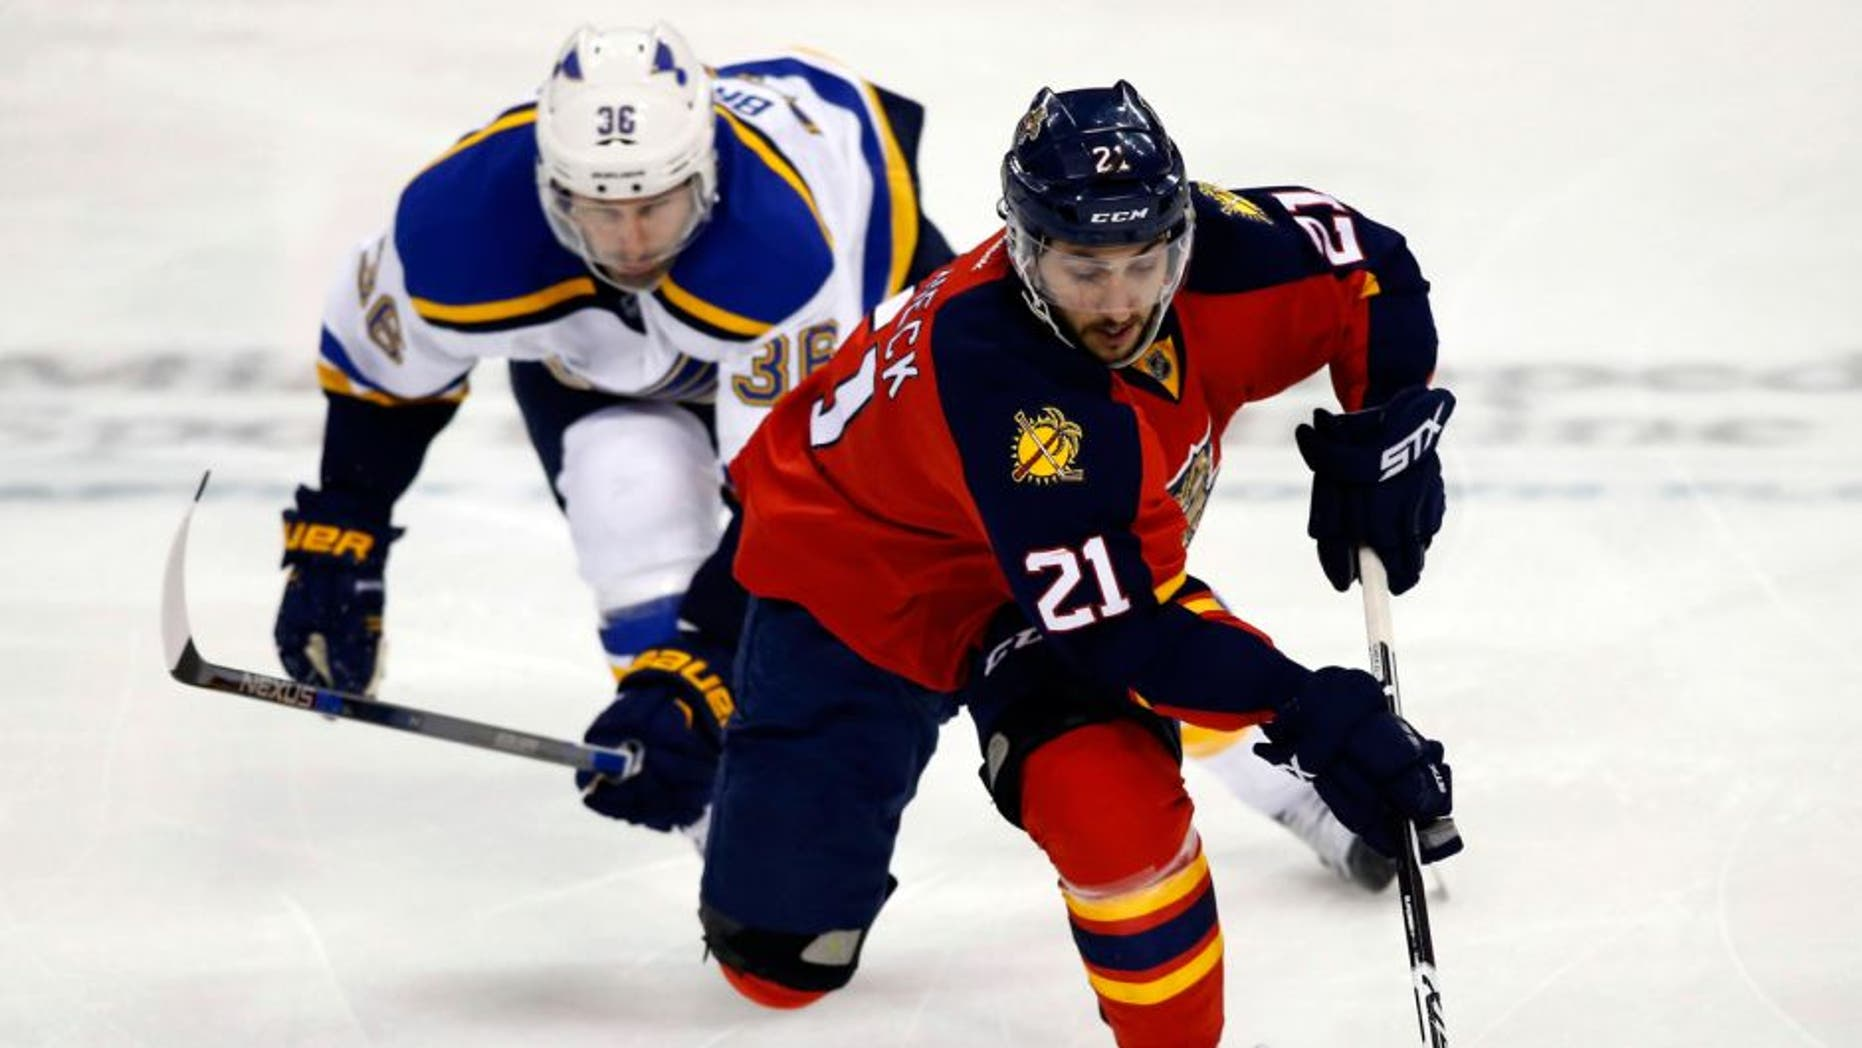 Feb 12, 2016; Sunrise, FL, USA; Florida Panthers center Vincent Trocheck (21) skates with the puck as St. Louis Blues right wing Troy Brouwer (36) pursues in the third period at BB&T Center. The Blues won 5-3. Mandatory Credit: Robert Mayer-USA TODAY Sports